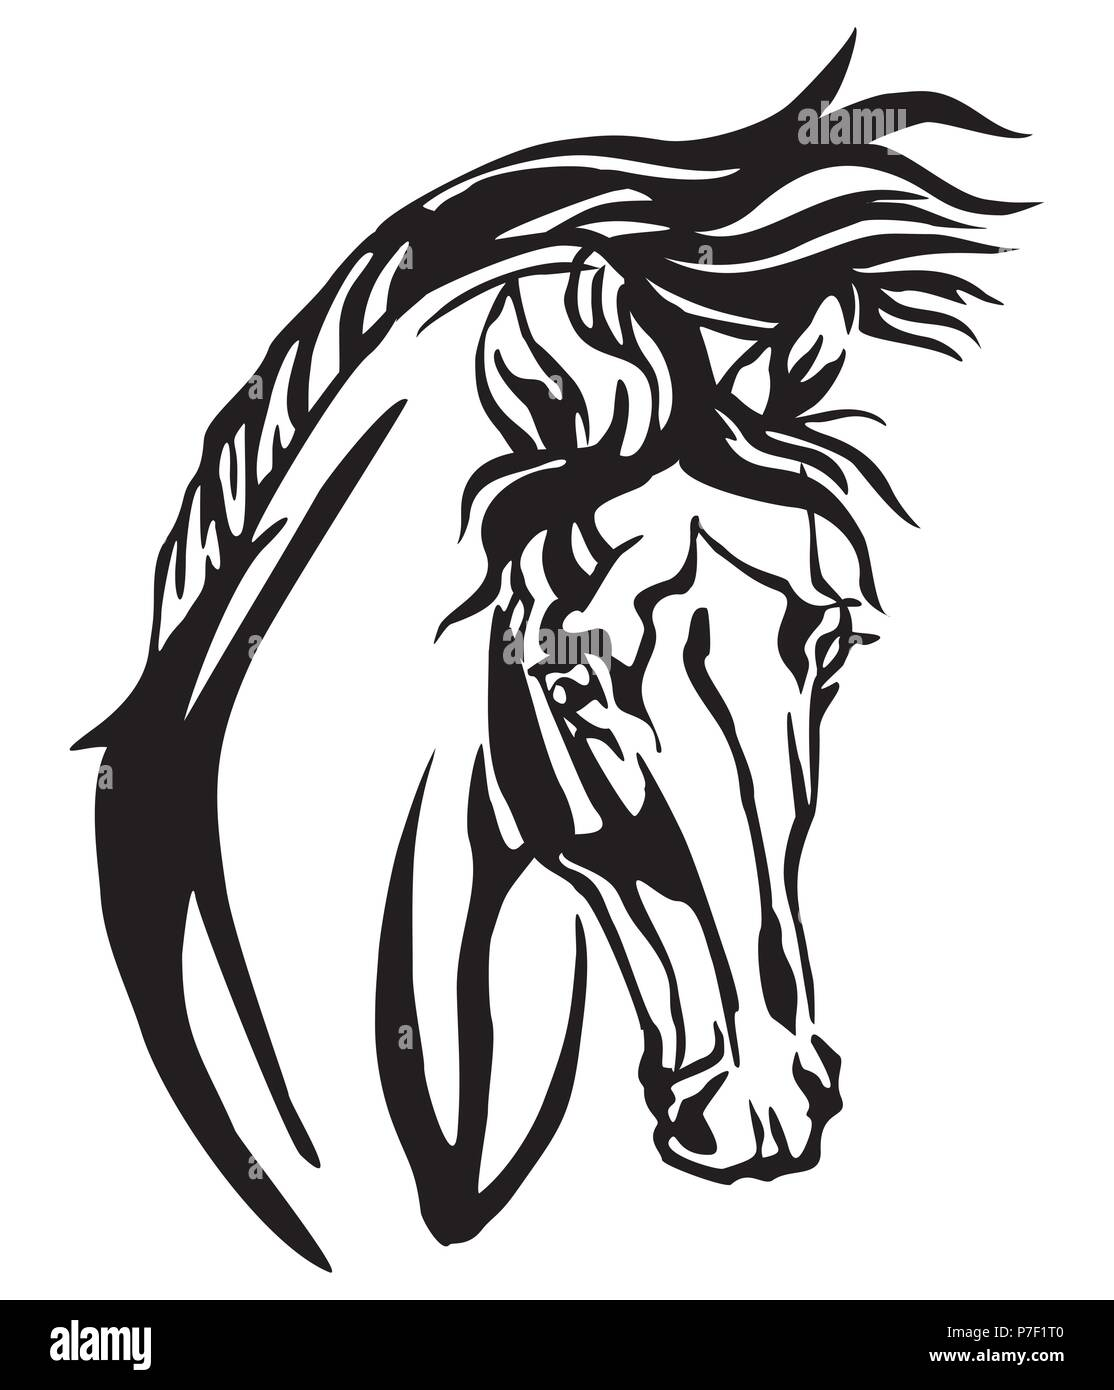 Decorative Portrait Of Arabian Horse Vector Isolated Illustration In Black Color On White Background Image For Design And Tattoo Stock Vector Image Art Alamy